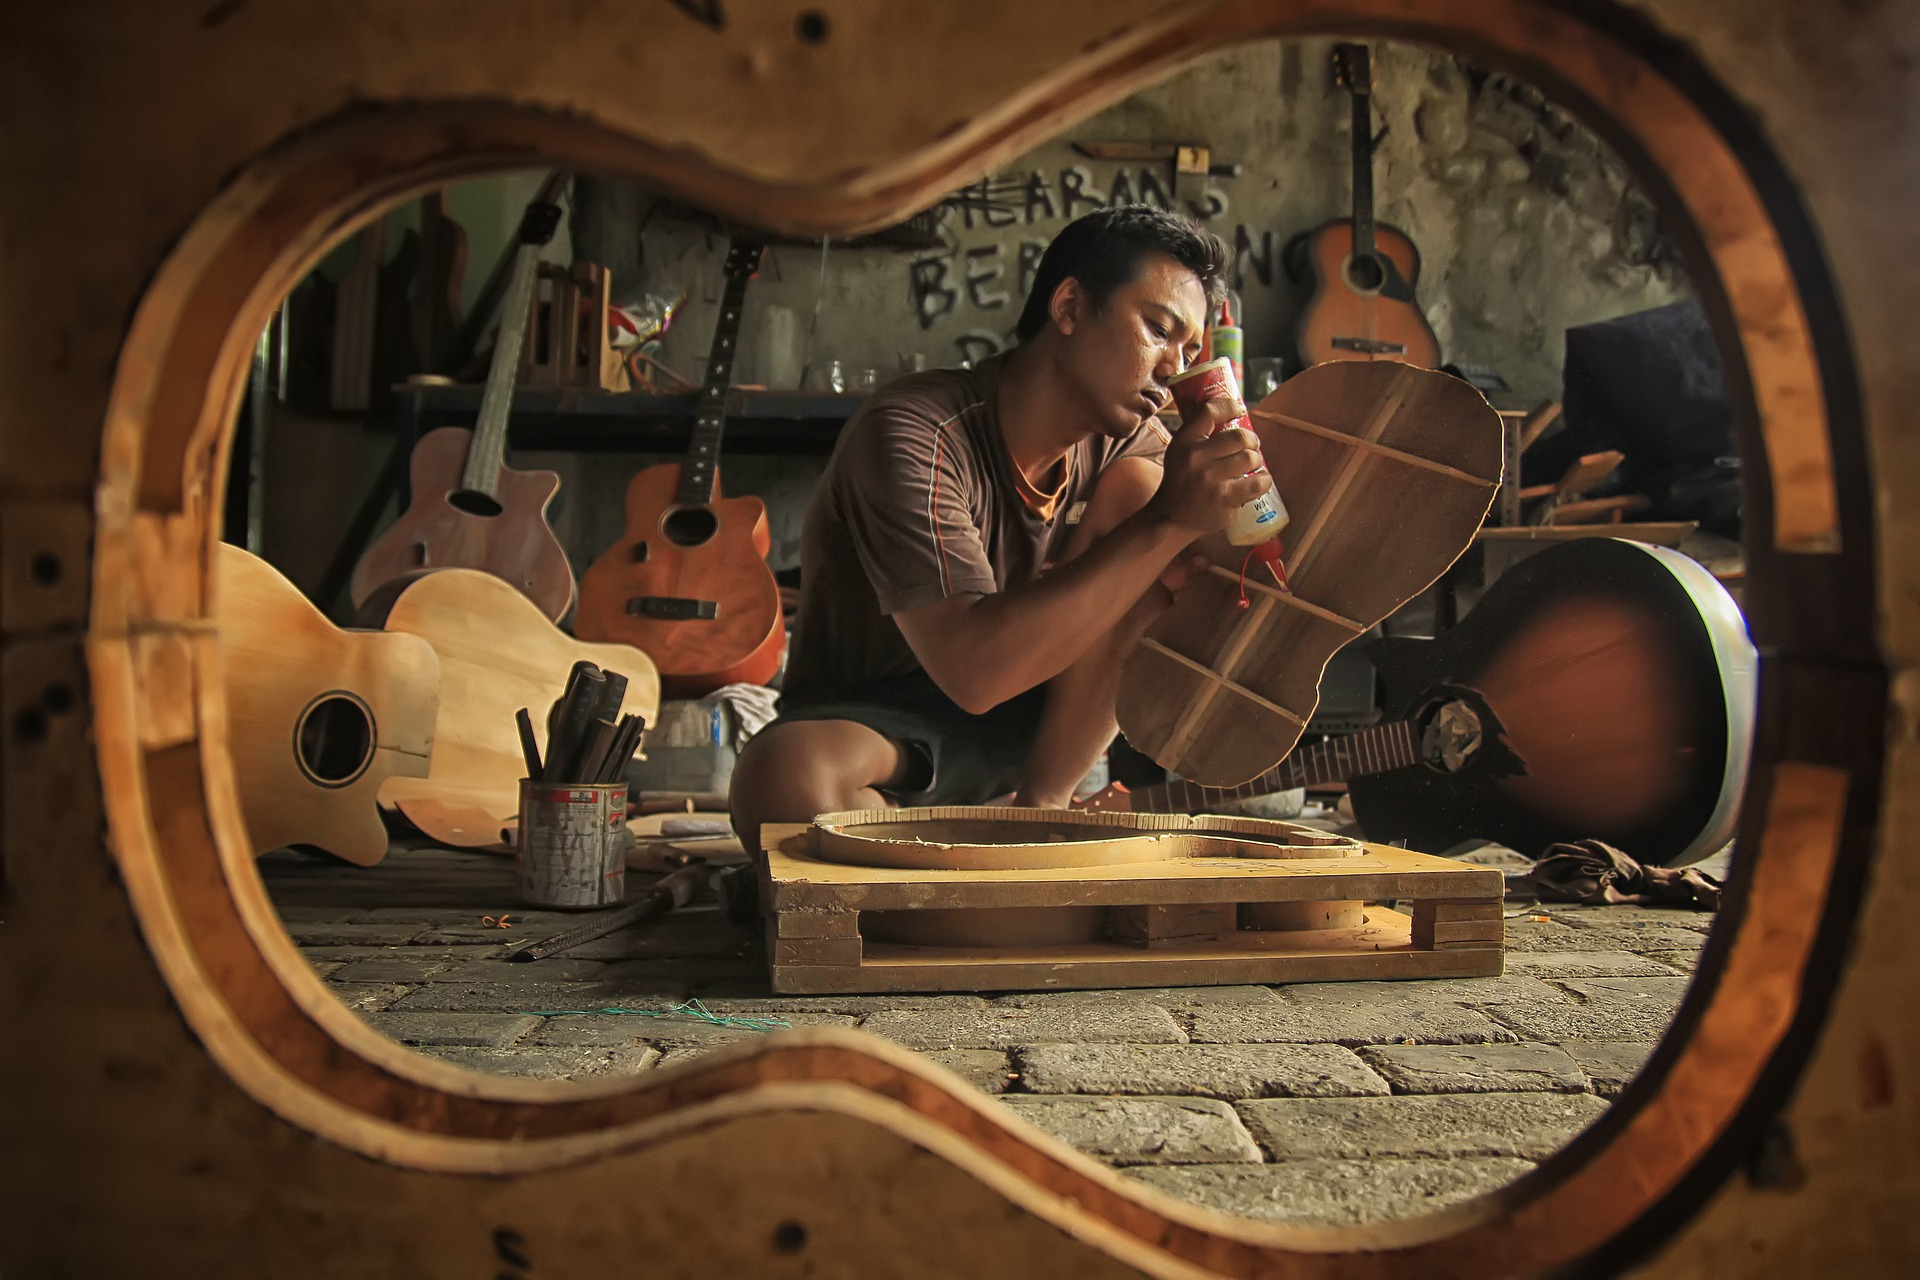 A man working on a hand-made guitar